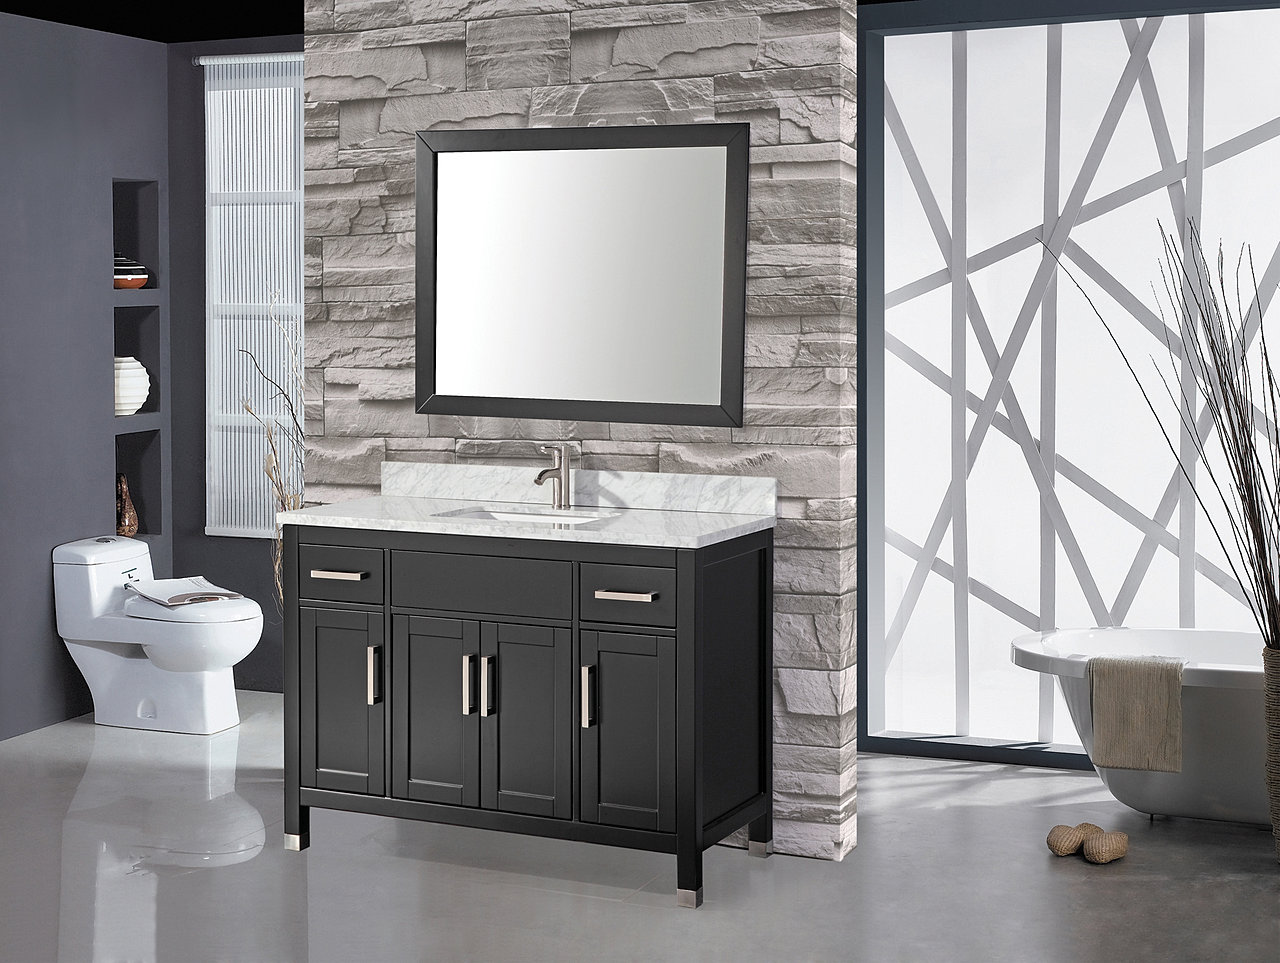 Custom Bathroom Vanities Fort Lauderdale the joshua tree| bathroom vanities| home